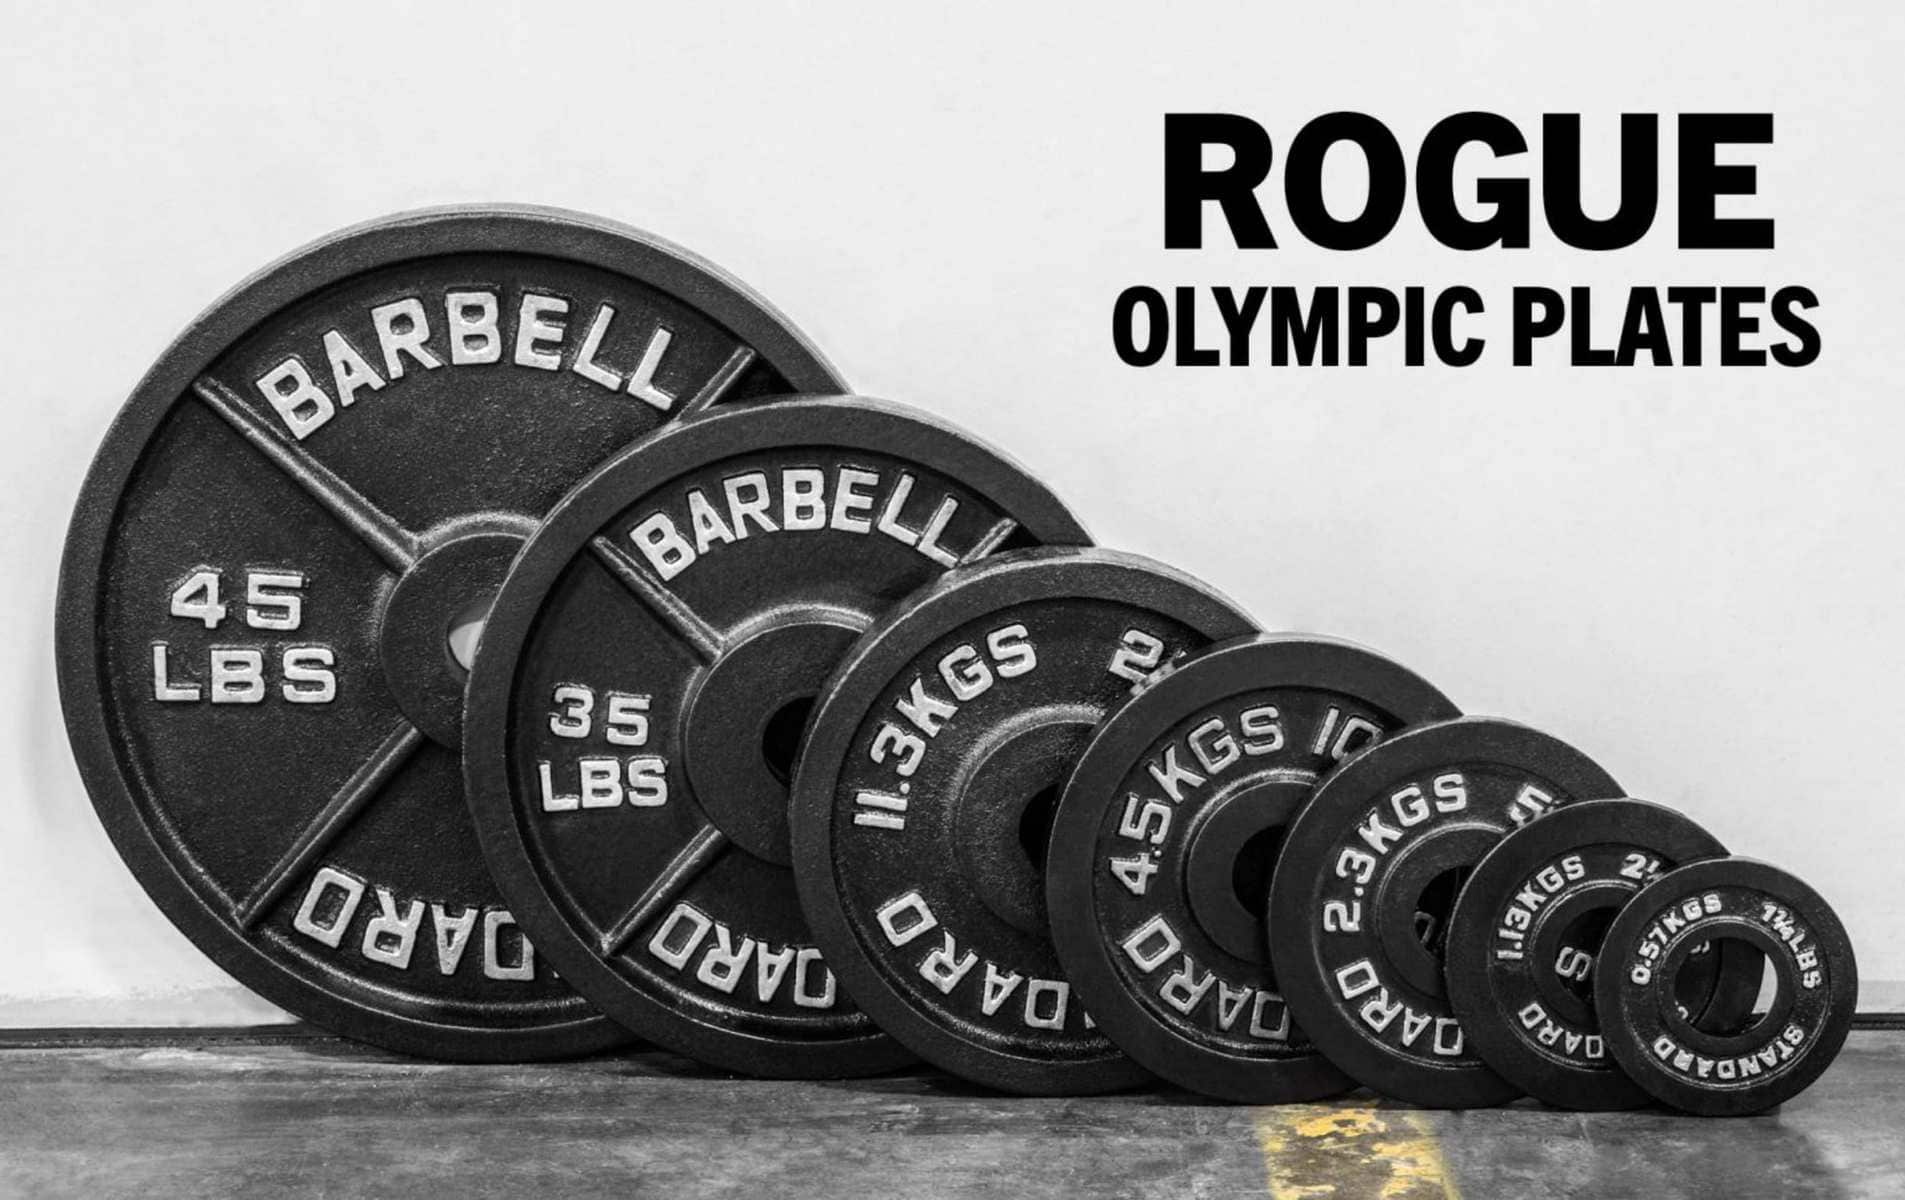 Rogue Olympic Plates